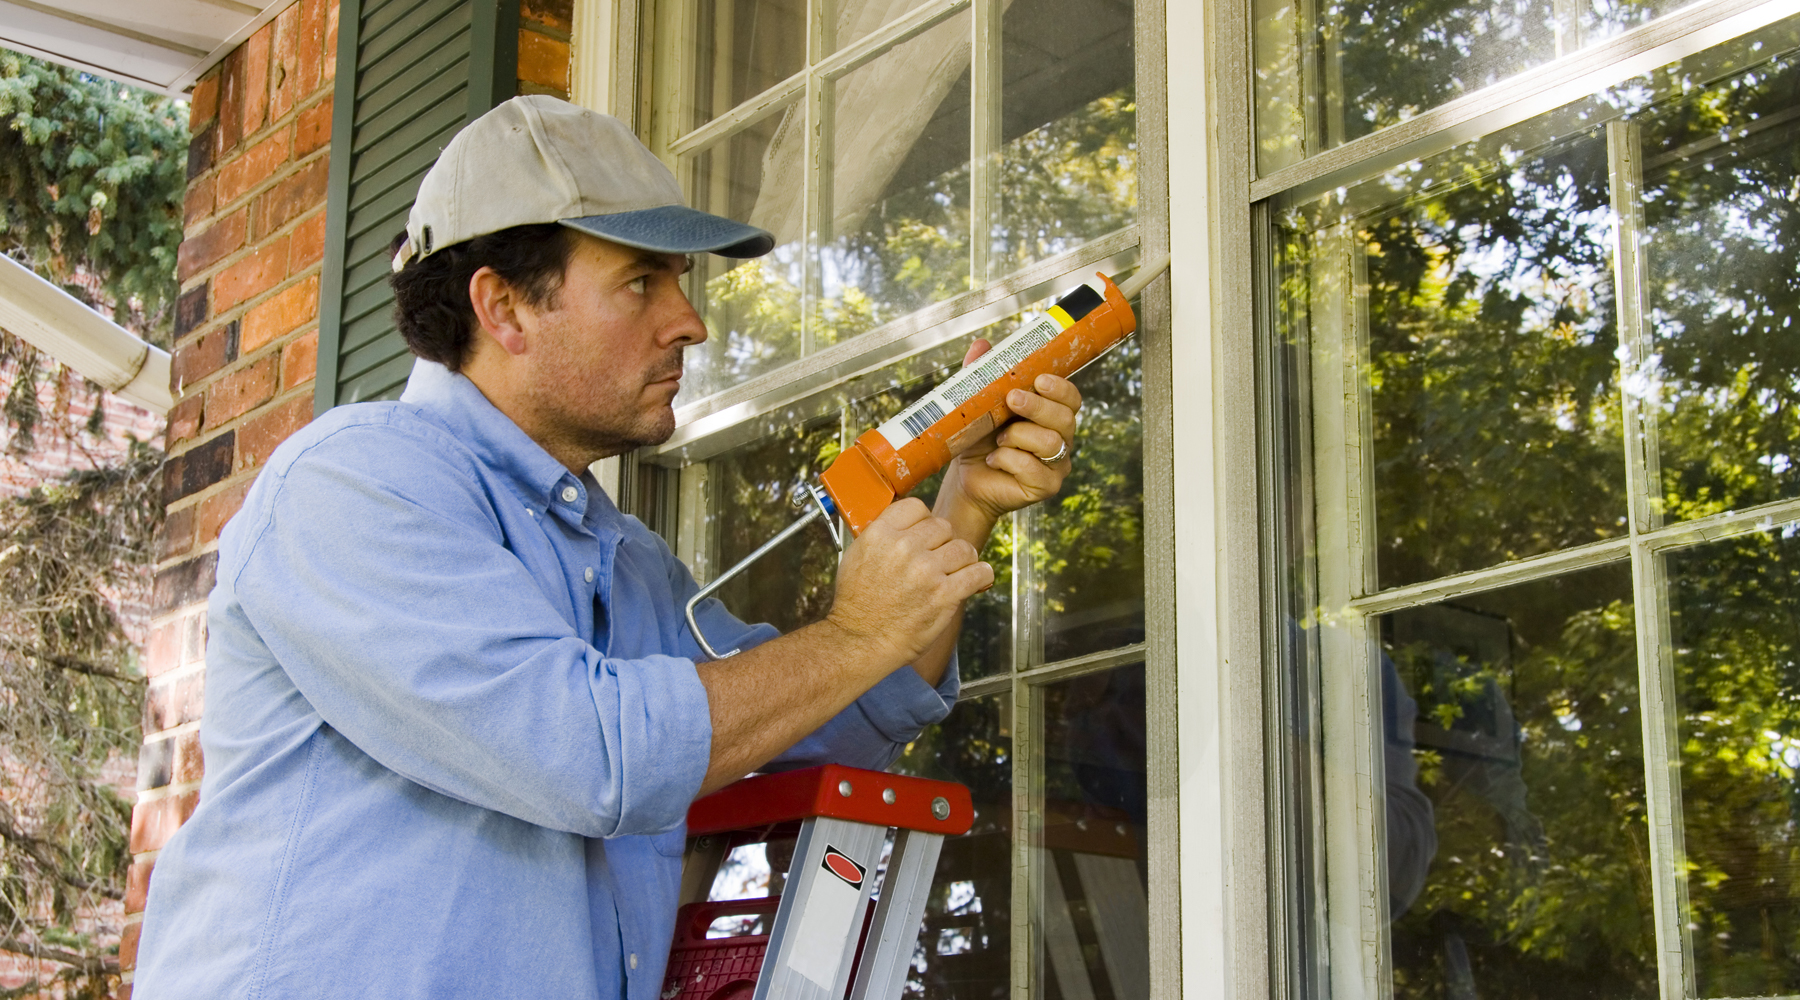 home maintenance company, inspector handyman, denver CO